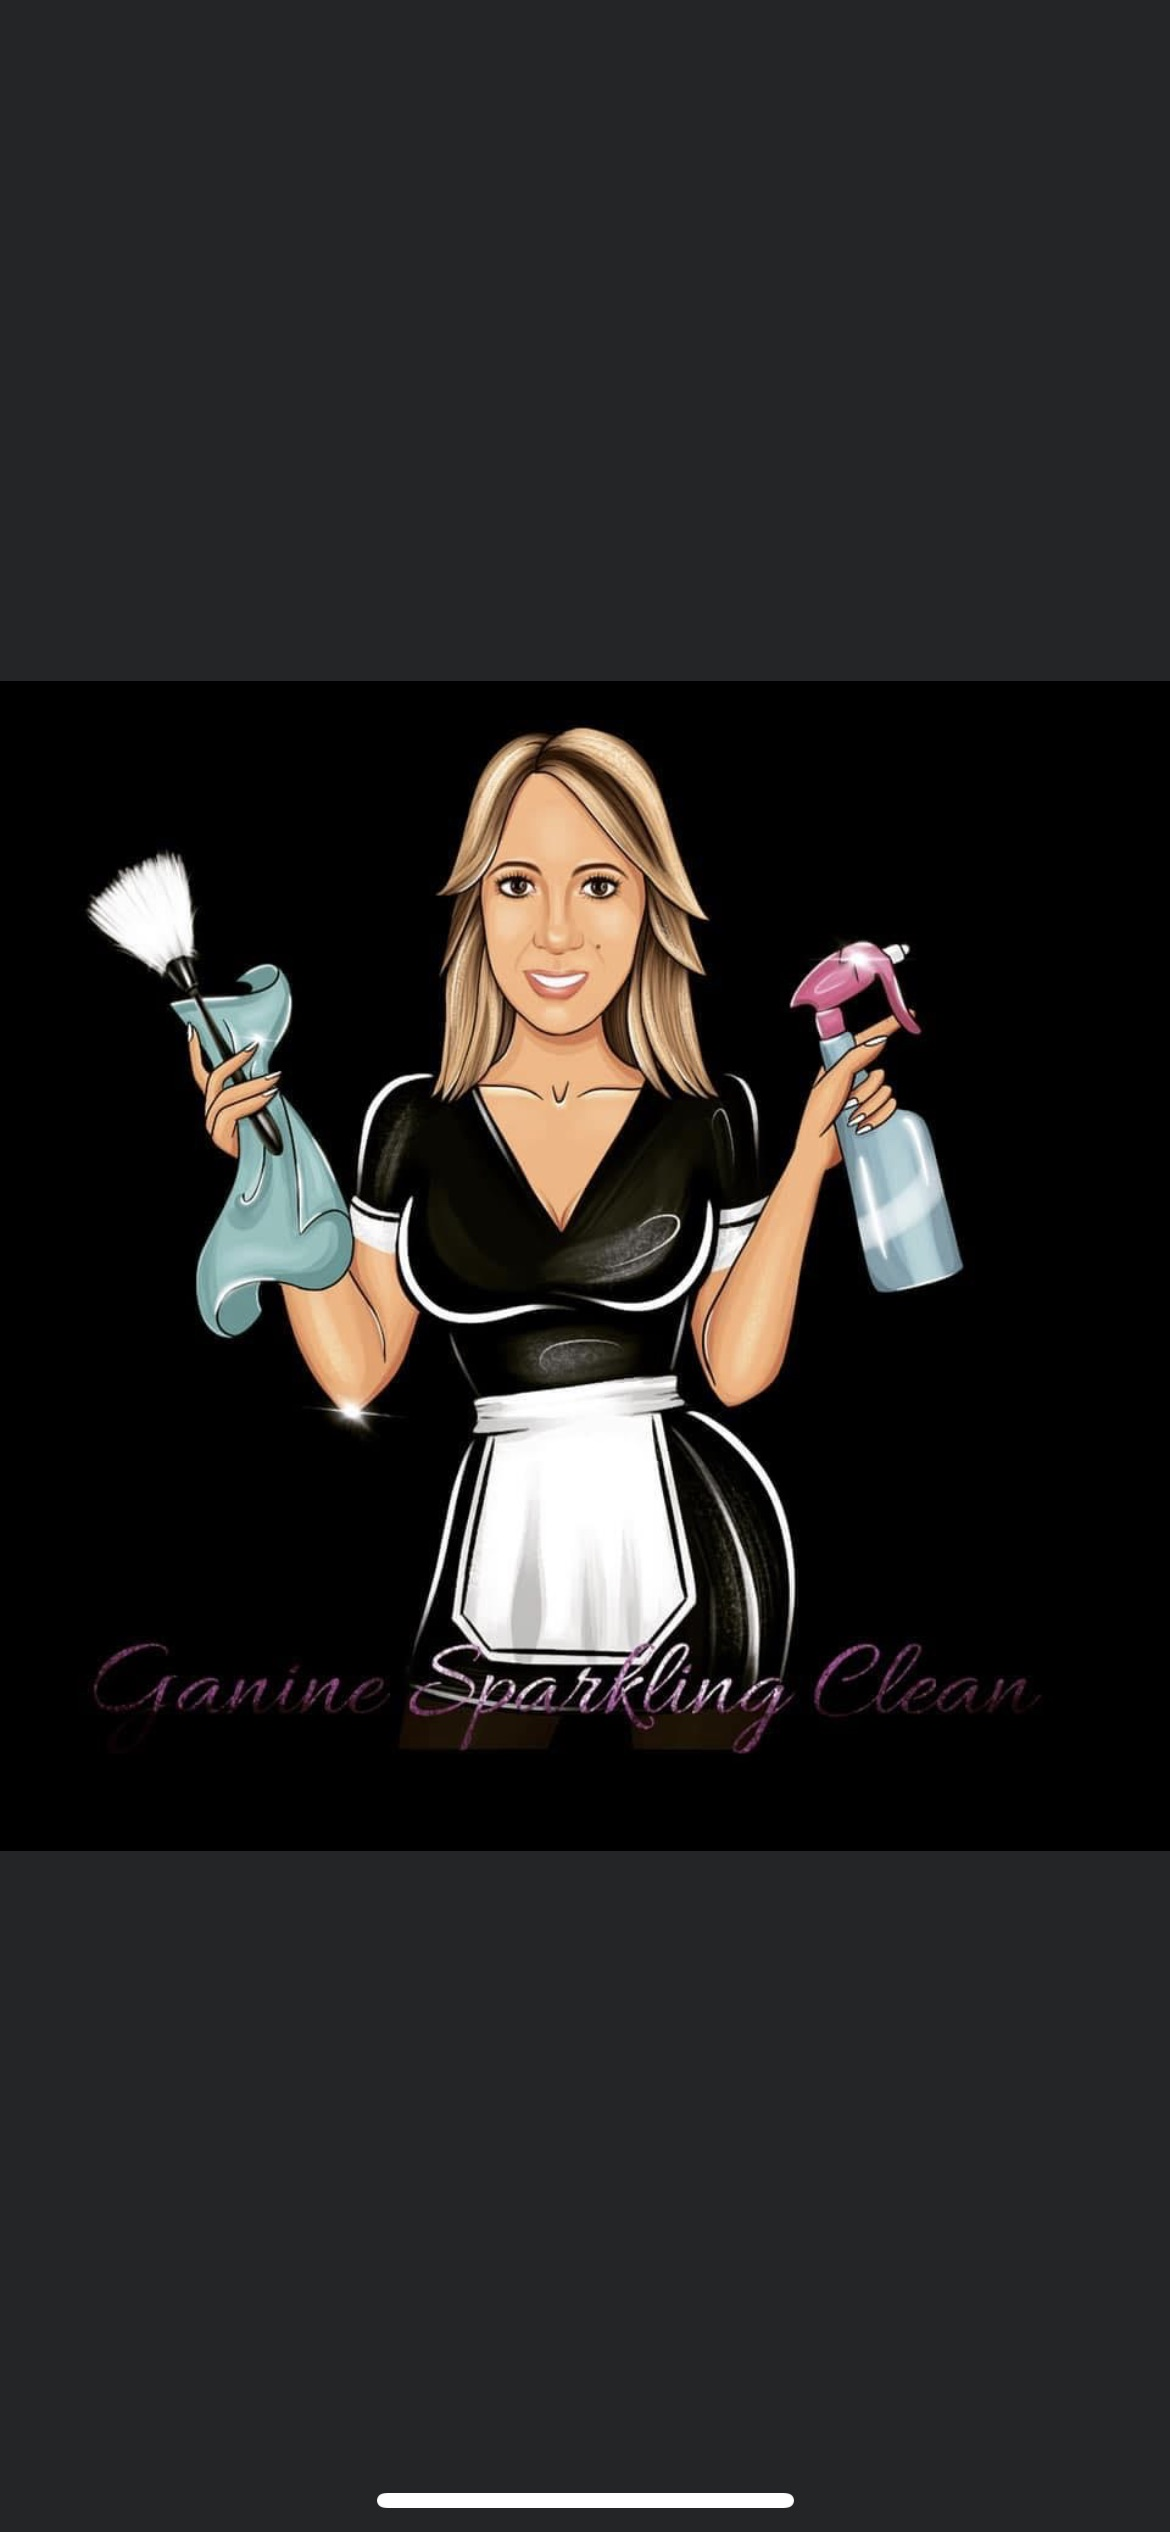 Janine's Sparkling Clean Cleaning Company